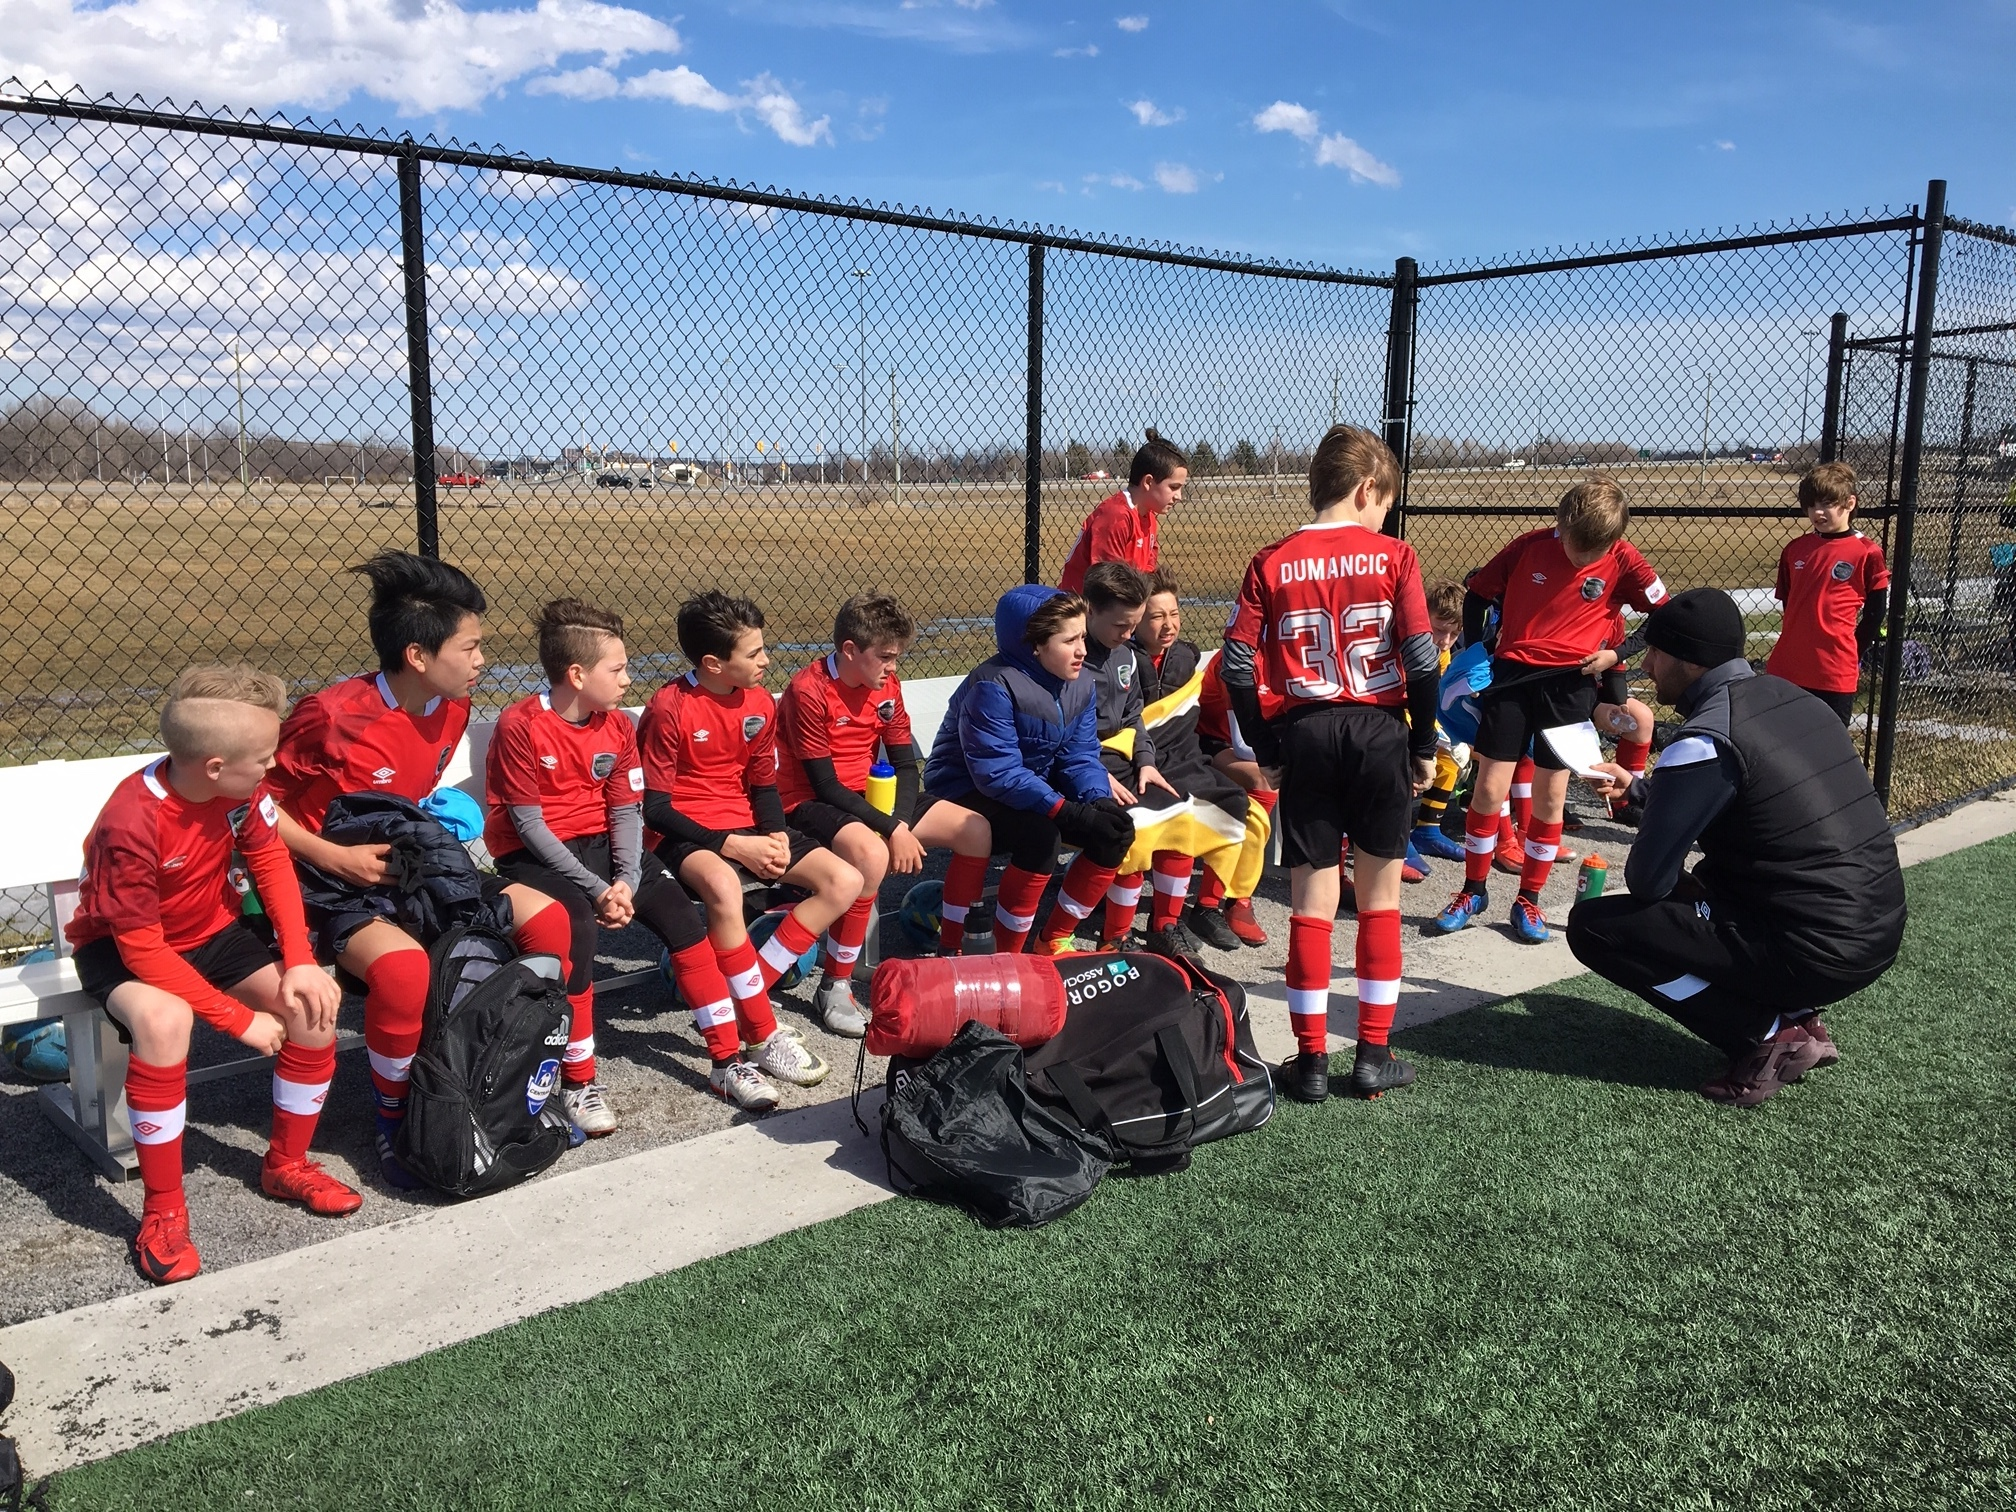 23b83d9c2 RED-DY TO LISTEN...the OPDL rookies are fully focused on this team talk  from Technical Director Billy Wilson in Ottawa